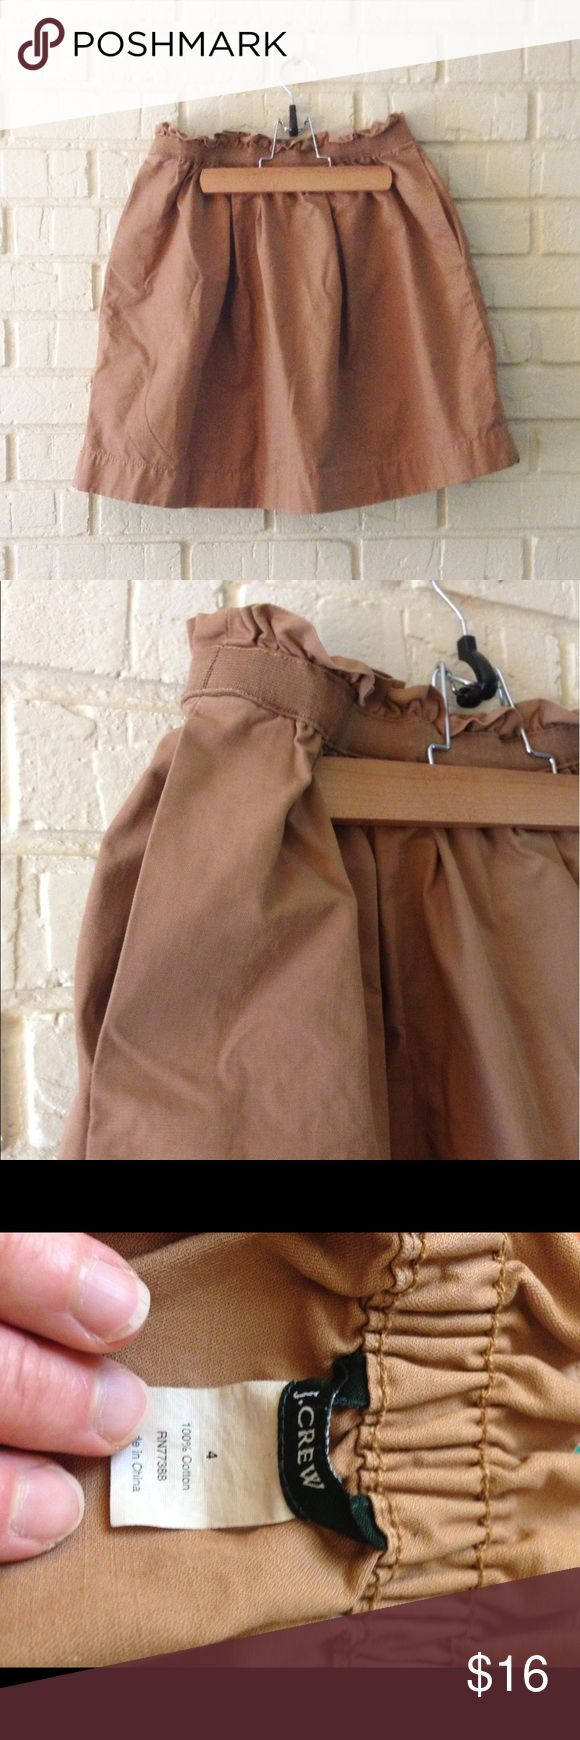 J. Crew camel skirt Adorable camel colored skirt. Cute with pockets! J. Crew Skirts Mini